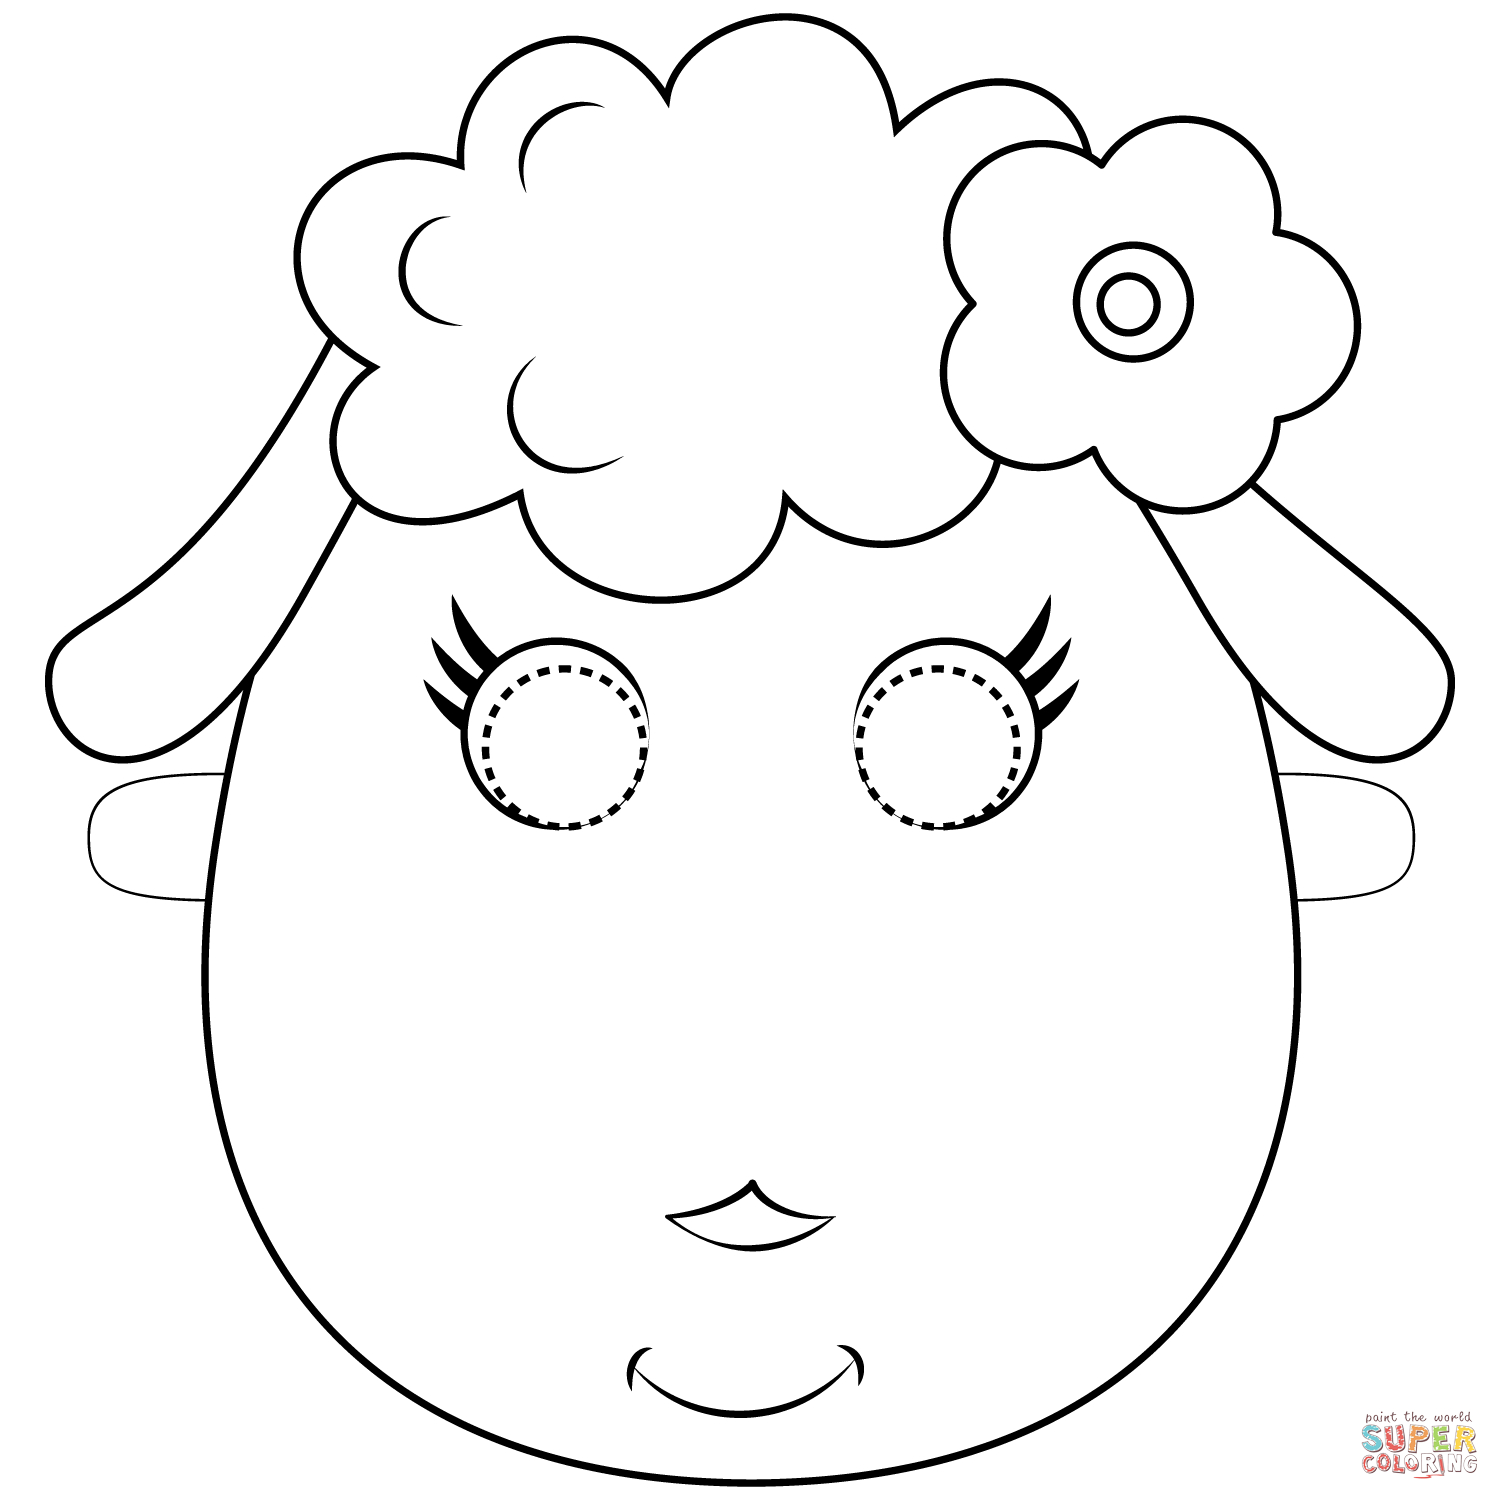 Sheep Mask Coloring Page | Free Printable Coloring Pages - Free Printable Sheep Mask